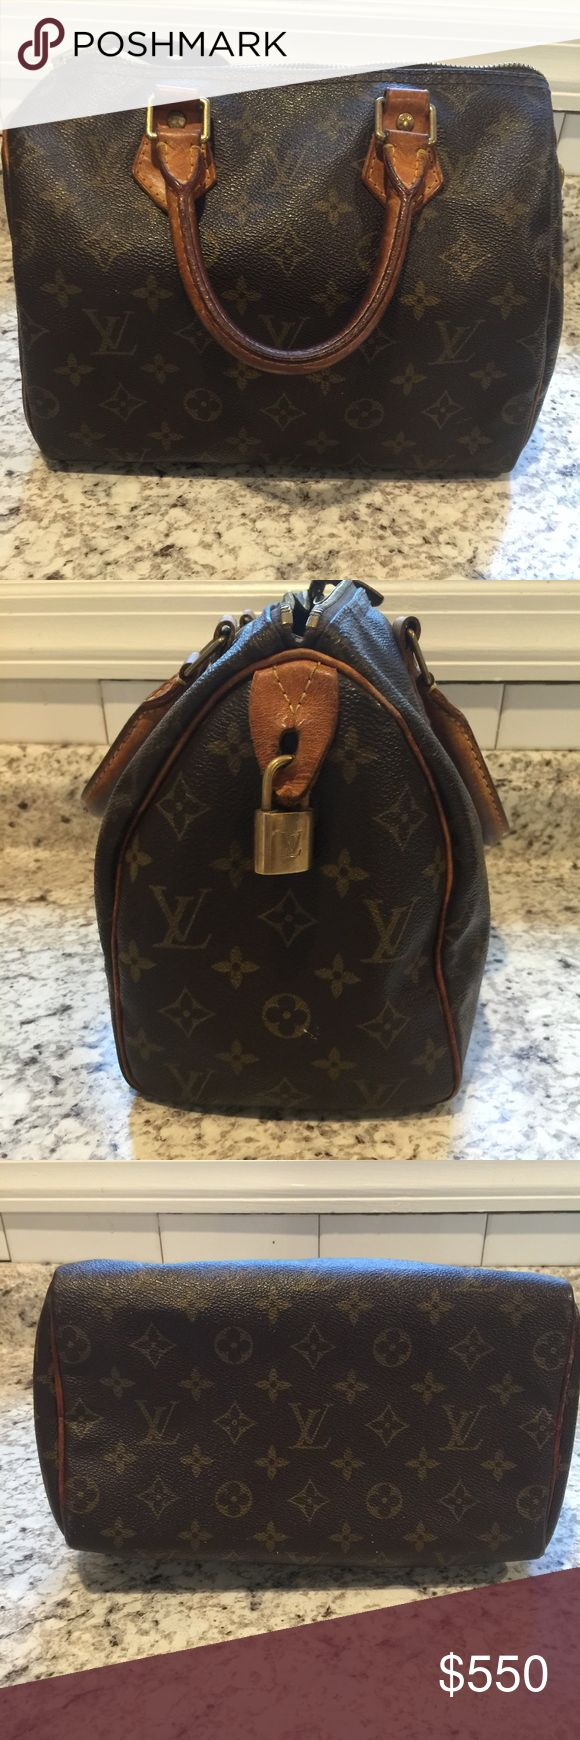 Authentic Louis Vuitton speedy Used condition. Zips perfectly. One pen ink stain on inside pocket. Other than that, so other signs of damage Louis Vuitton Bags Totes